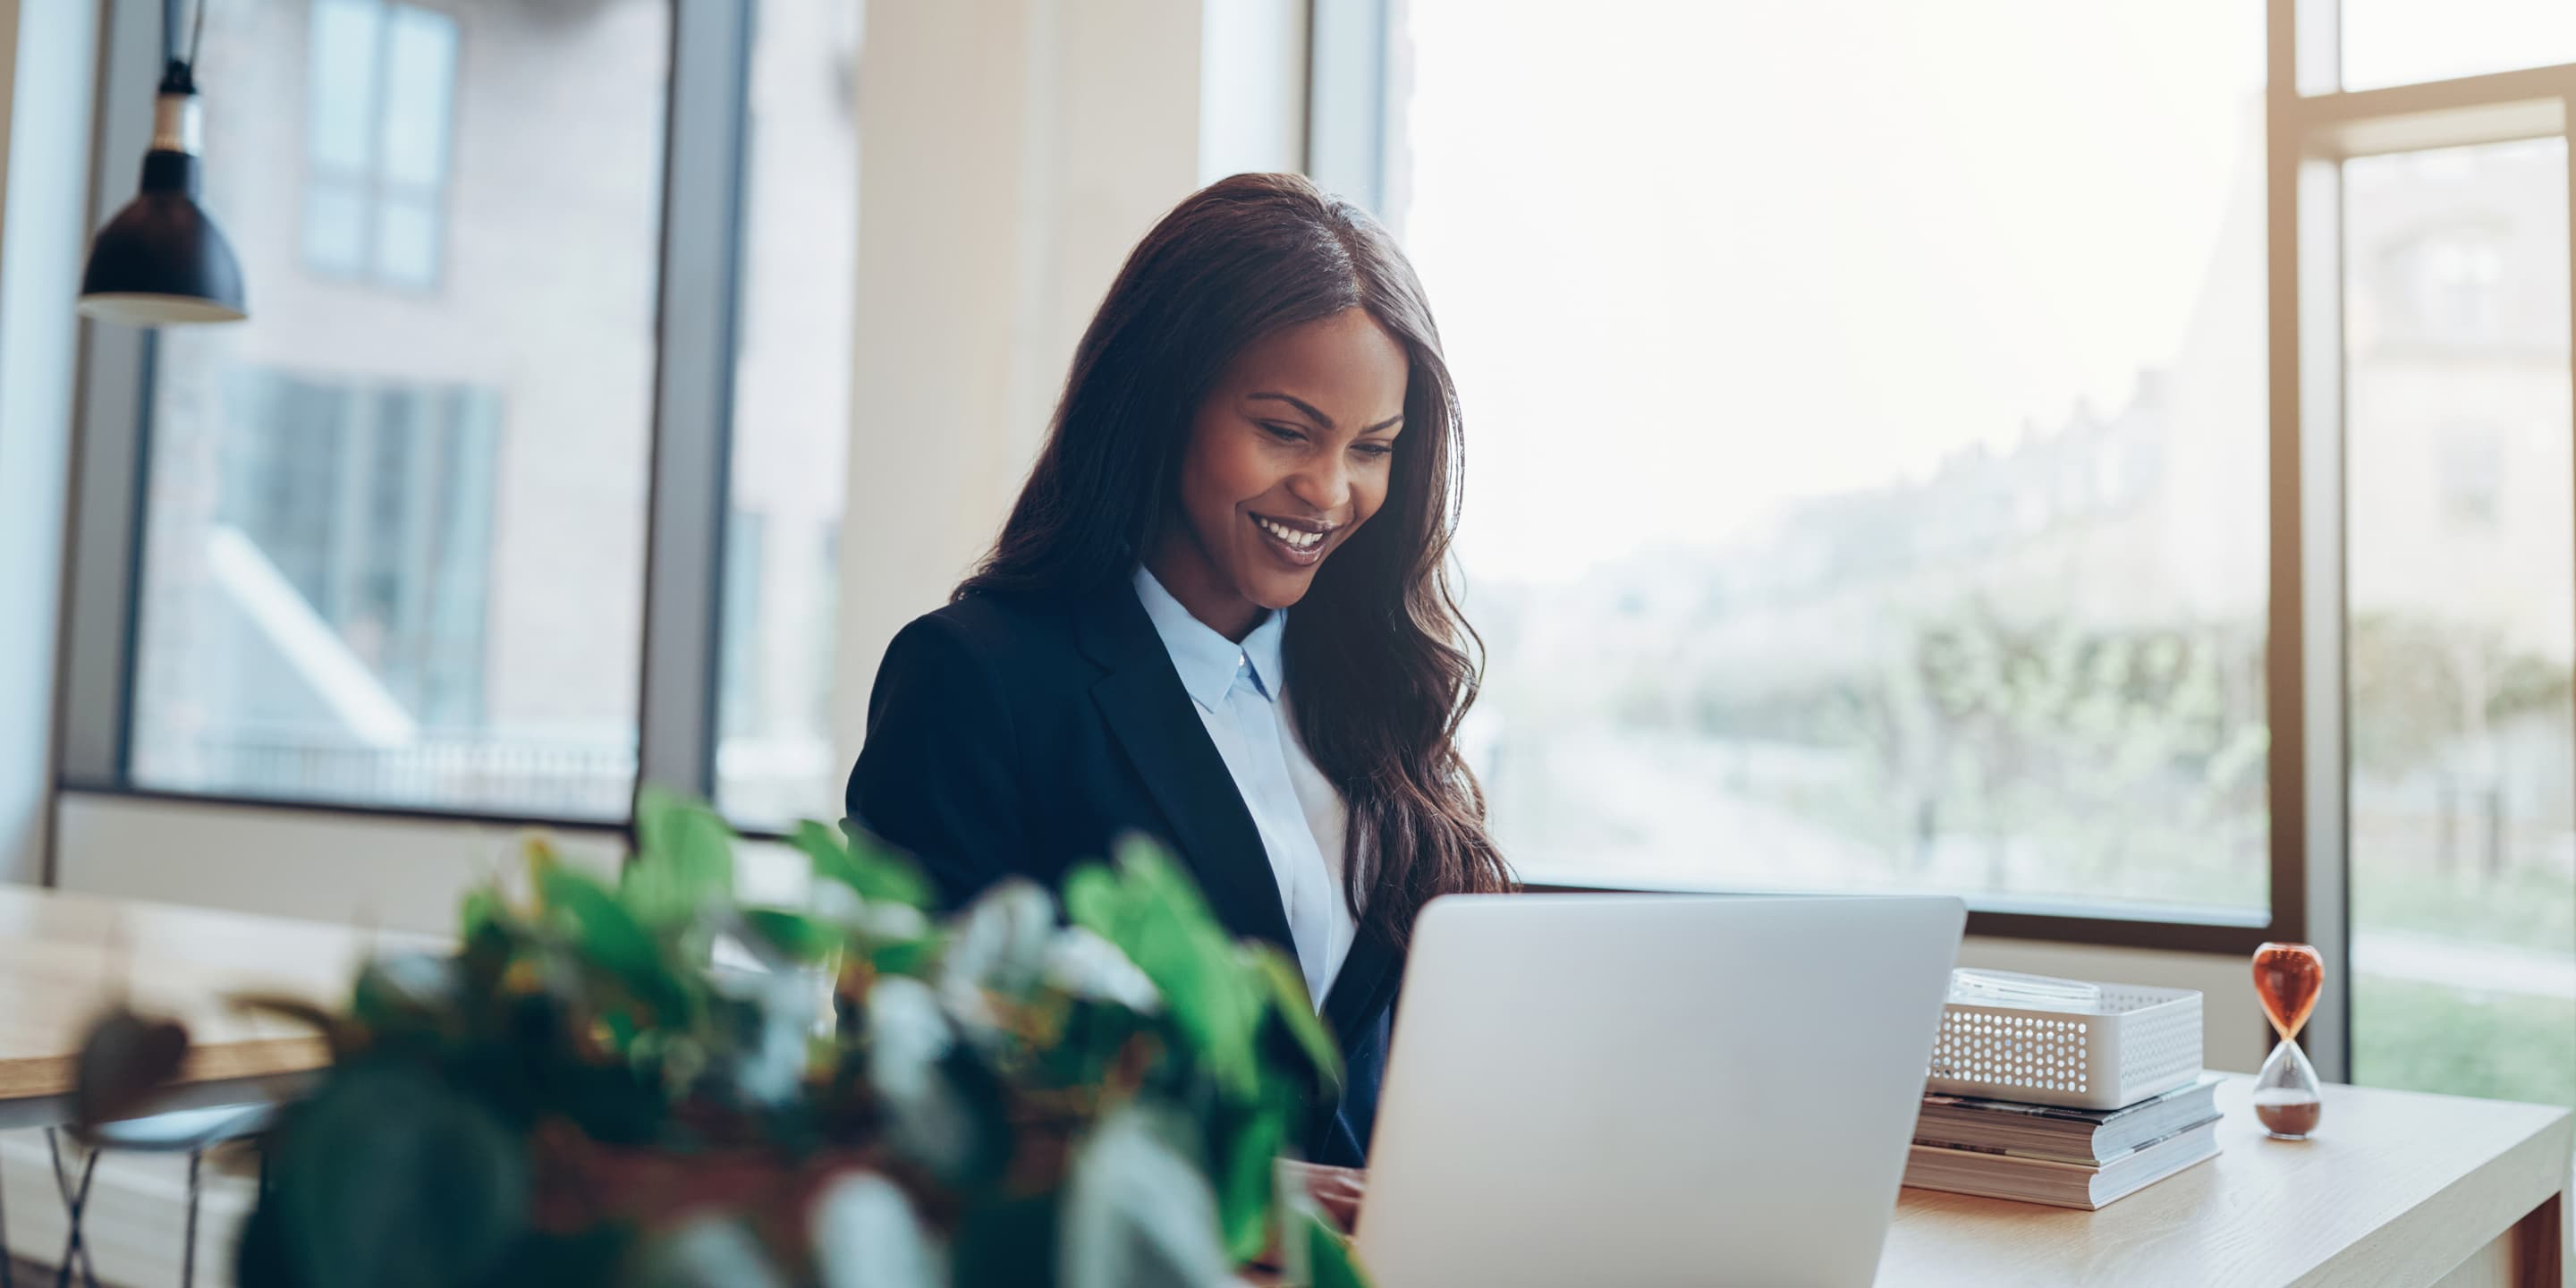 Smiling african american businesswoman using a lap LXD7 WJG